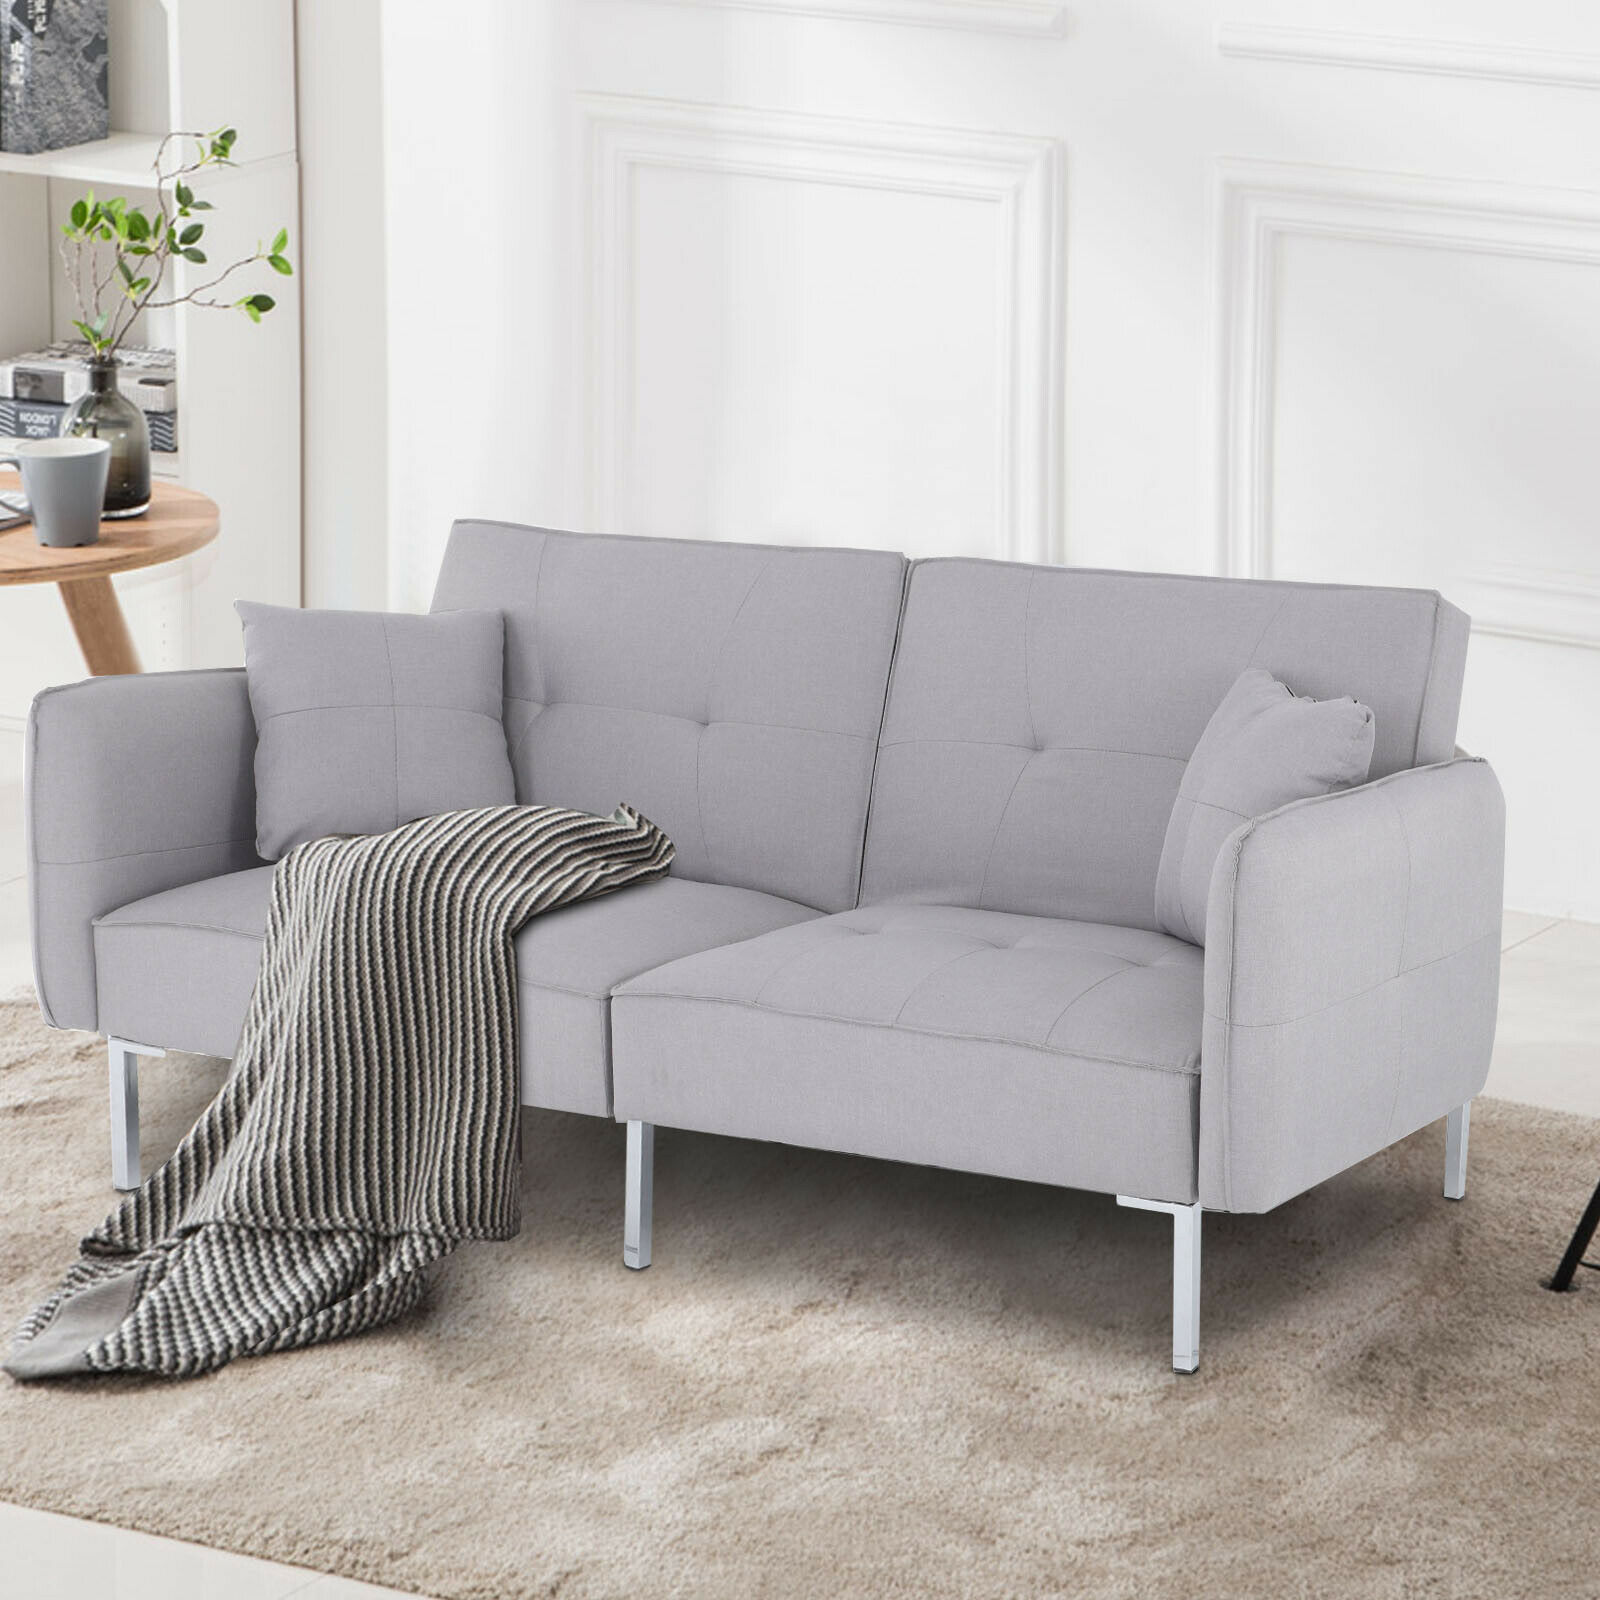 Ravena 2 Seat Click Clack Pull Out Sofa Bed Living Room Lounge Couch Grey Fabric For Sale Ebay